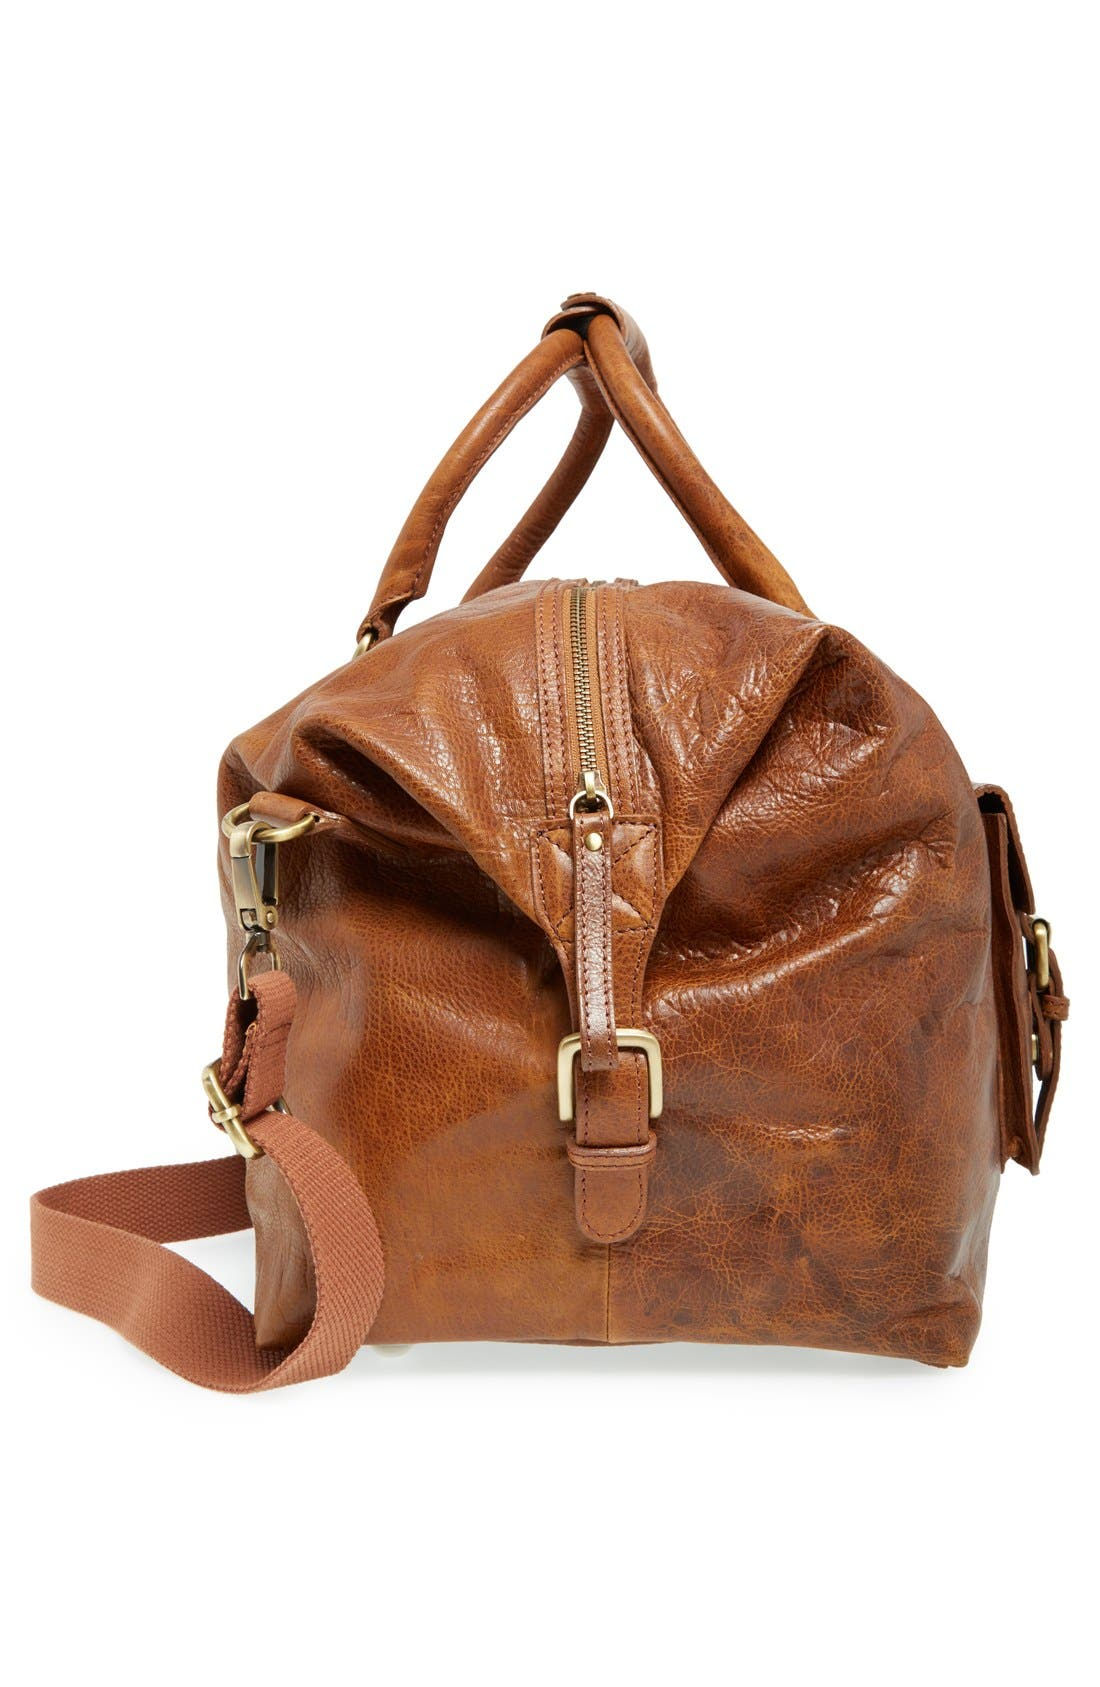 'Rugged' Leather Duffel Bag,                             Alternate thumbnail 4, color,                             Cognac